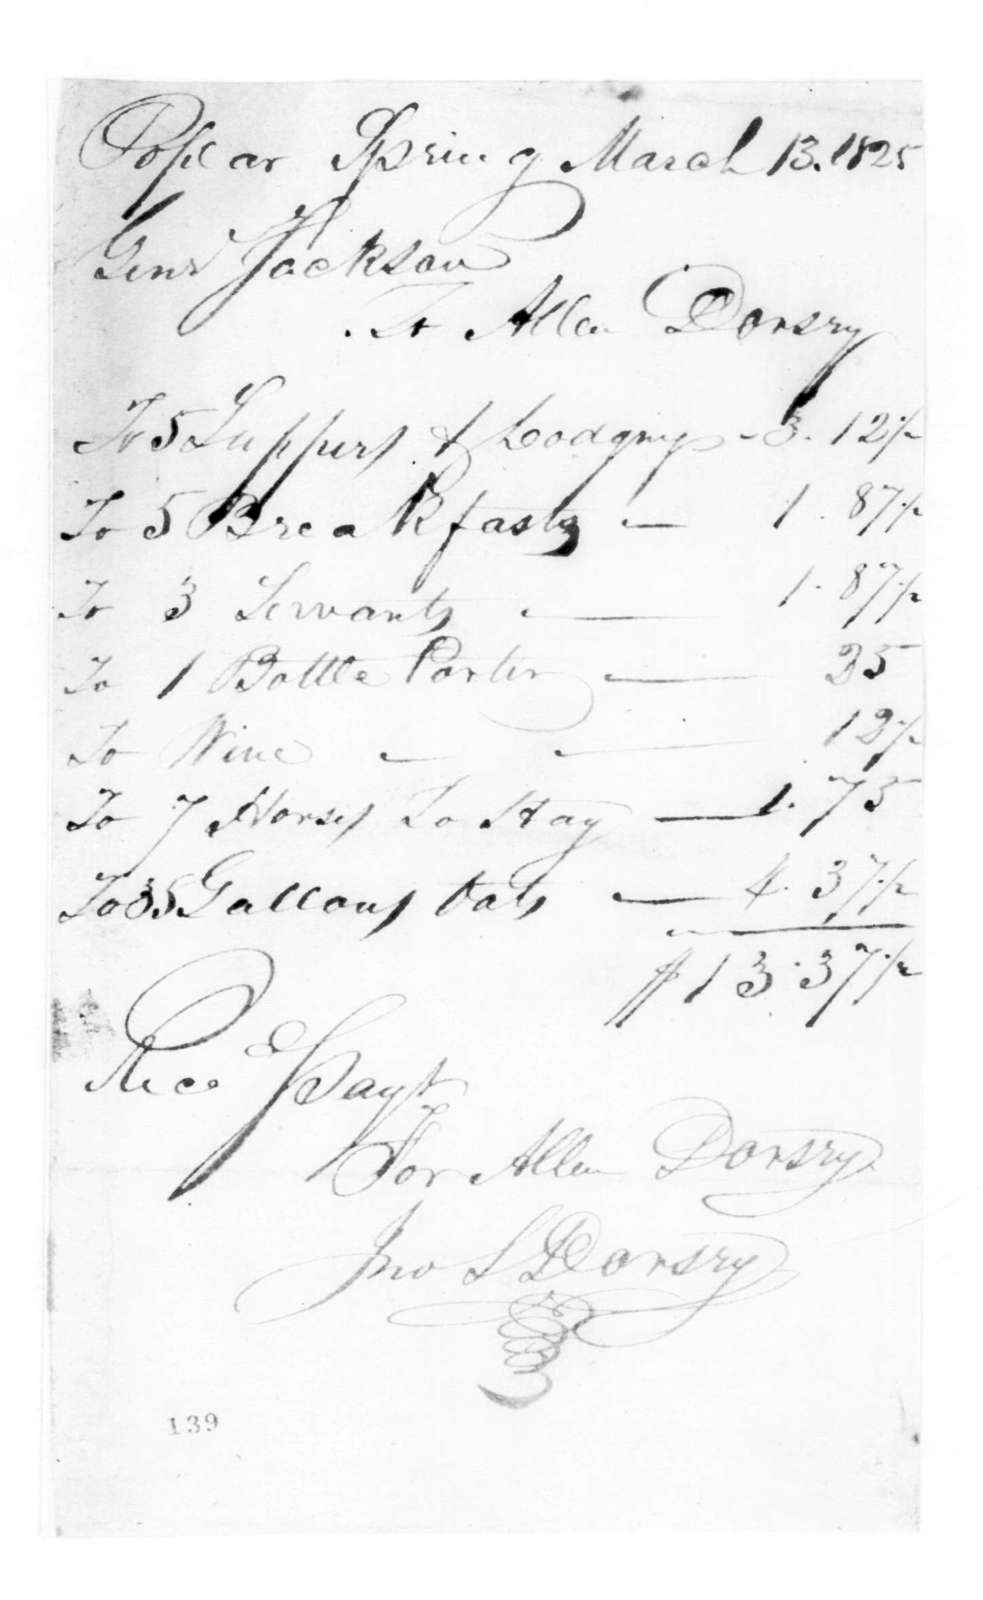 Allen Dorsry to Andrew Jackson, March 13, 1825